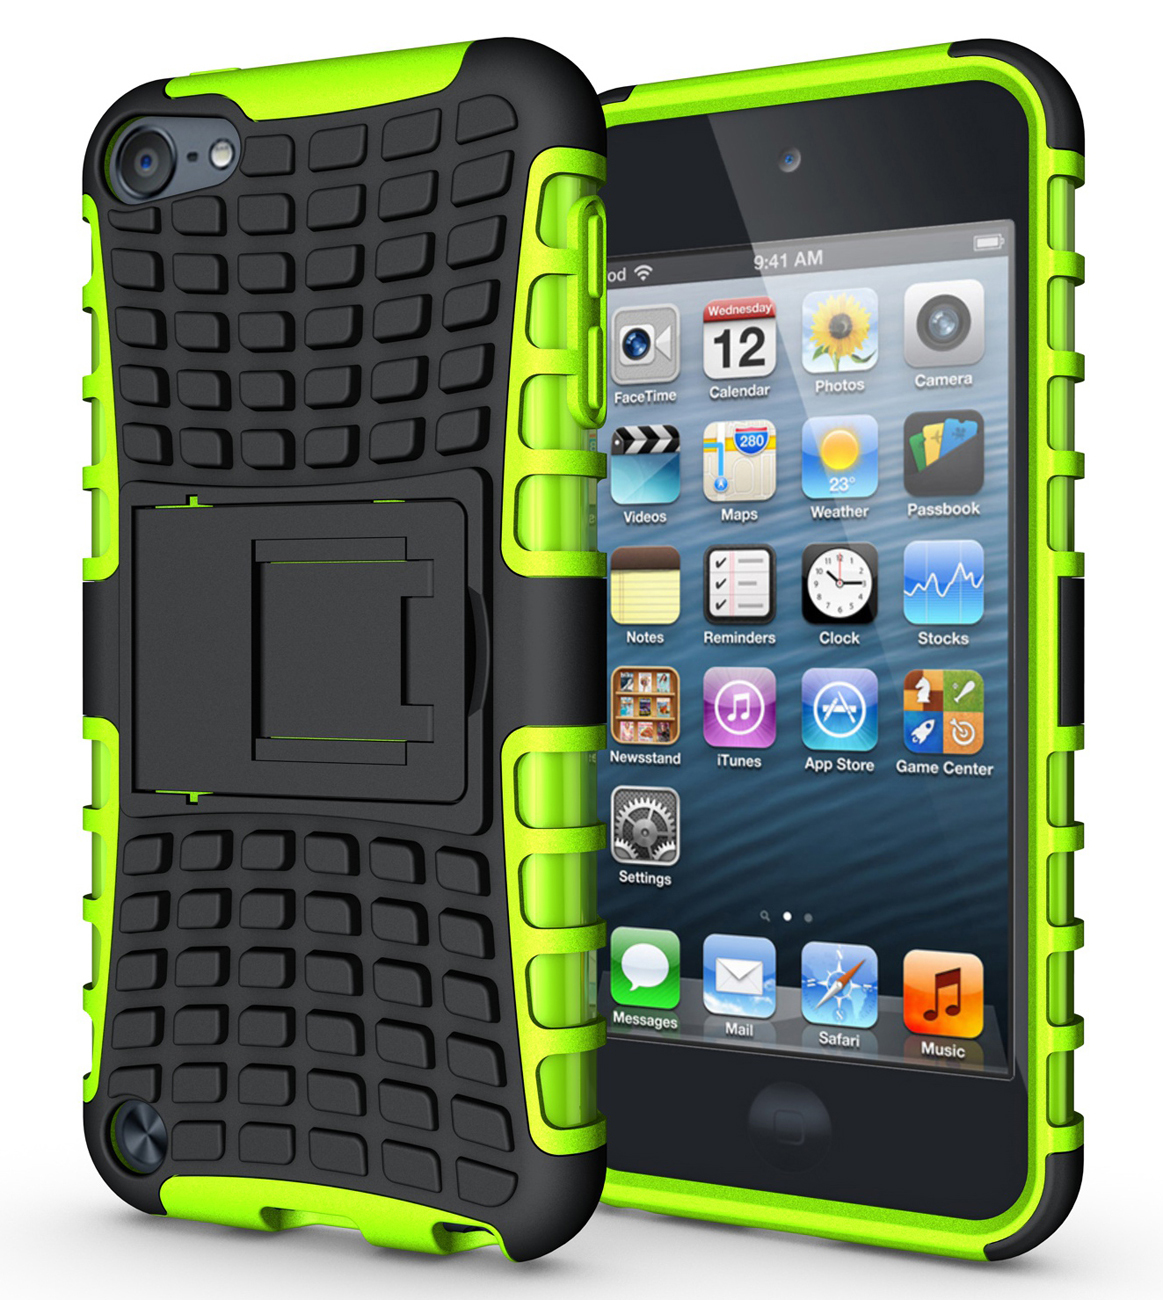 Ckstand hard soft rubber hybrid case cover for apple ipod touch 6th gen green p20151206153042514